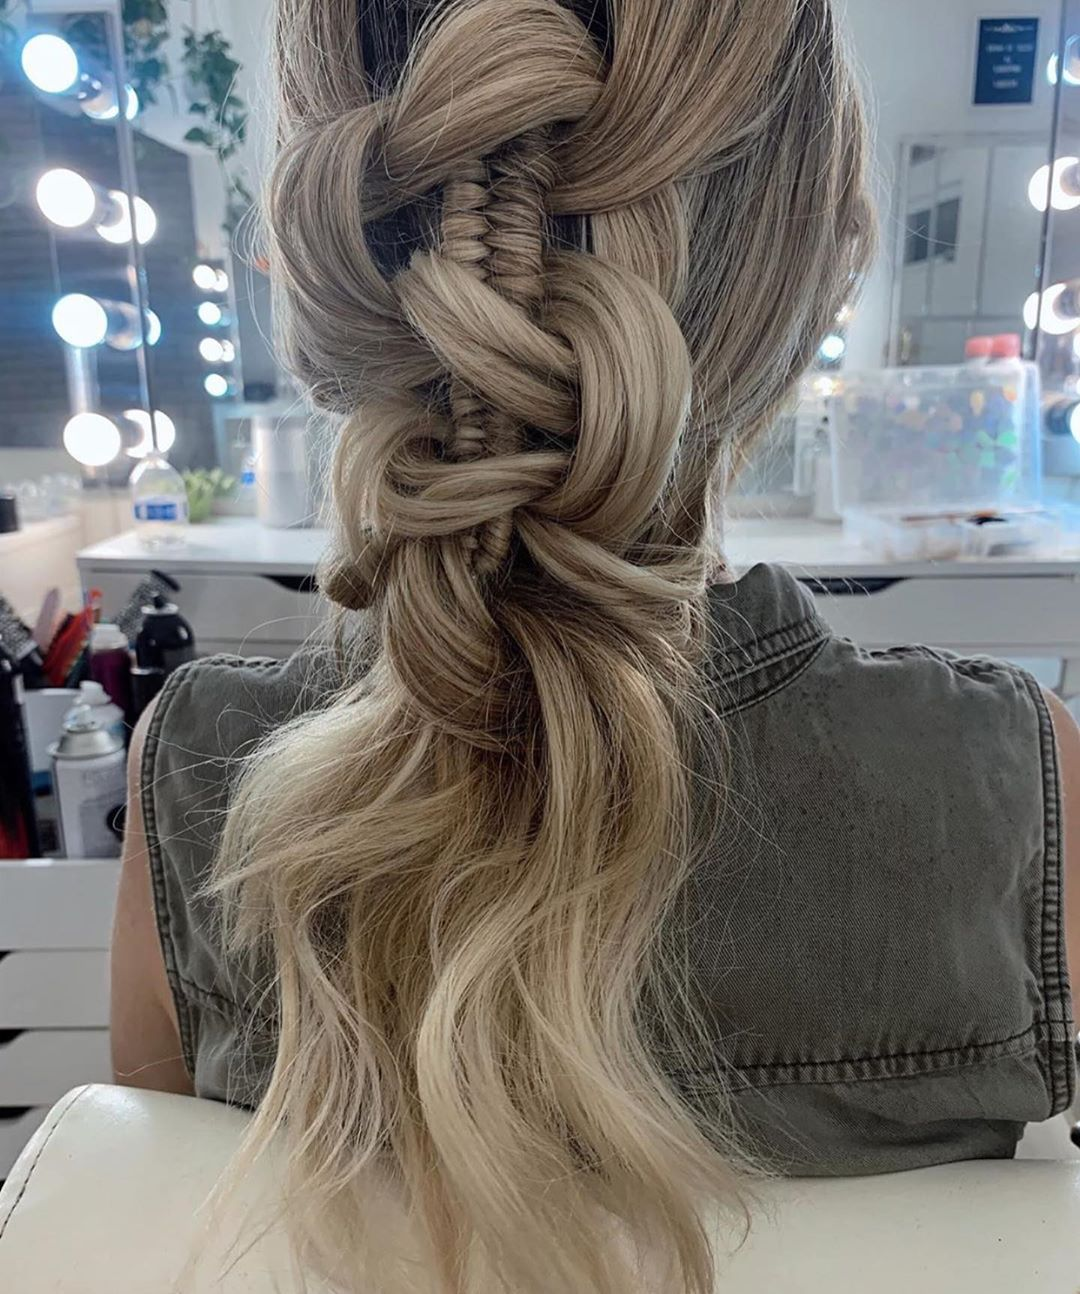 Pretty Ponytail Hairstyle for Long Hair - Ponytail Long Hairstyle Ideas